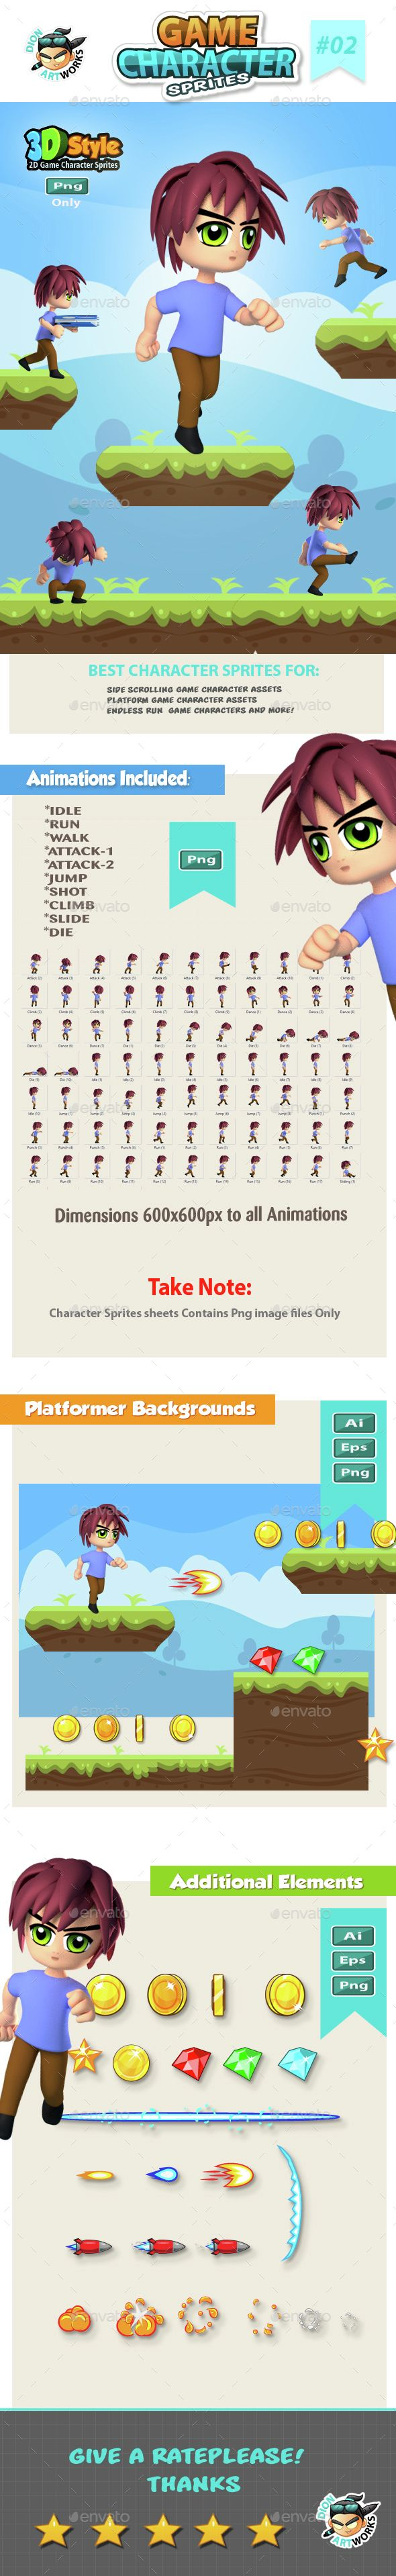 3D Style #Game Character Sprite sheets 02 - #Sprites Game #Assets Download here: https://graphicriver.net/item/3d-style-game-character-sprite-sheets-02/14757597?ref=alena994